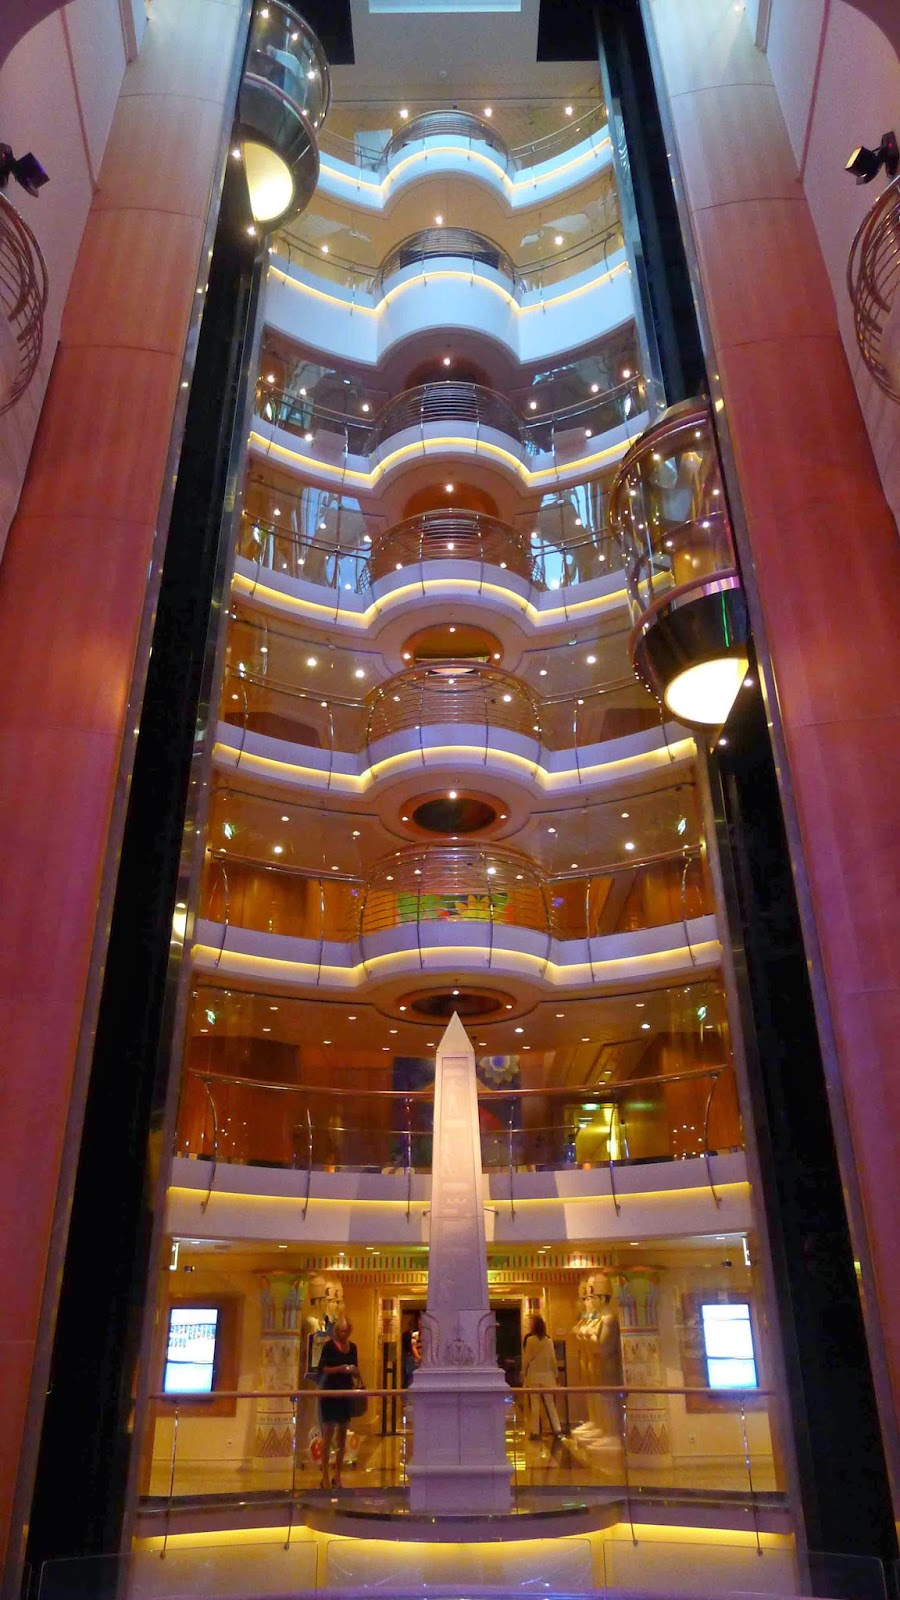 Liberty of the Seas - Promenade